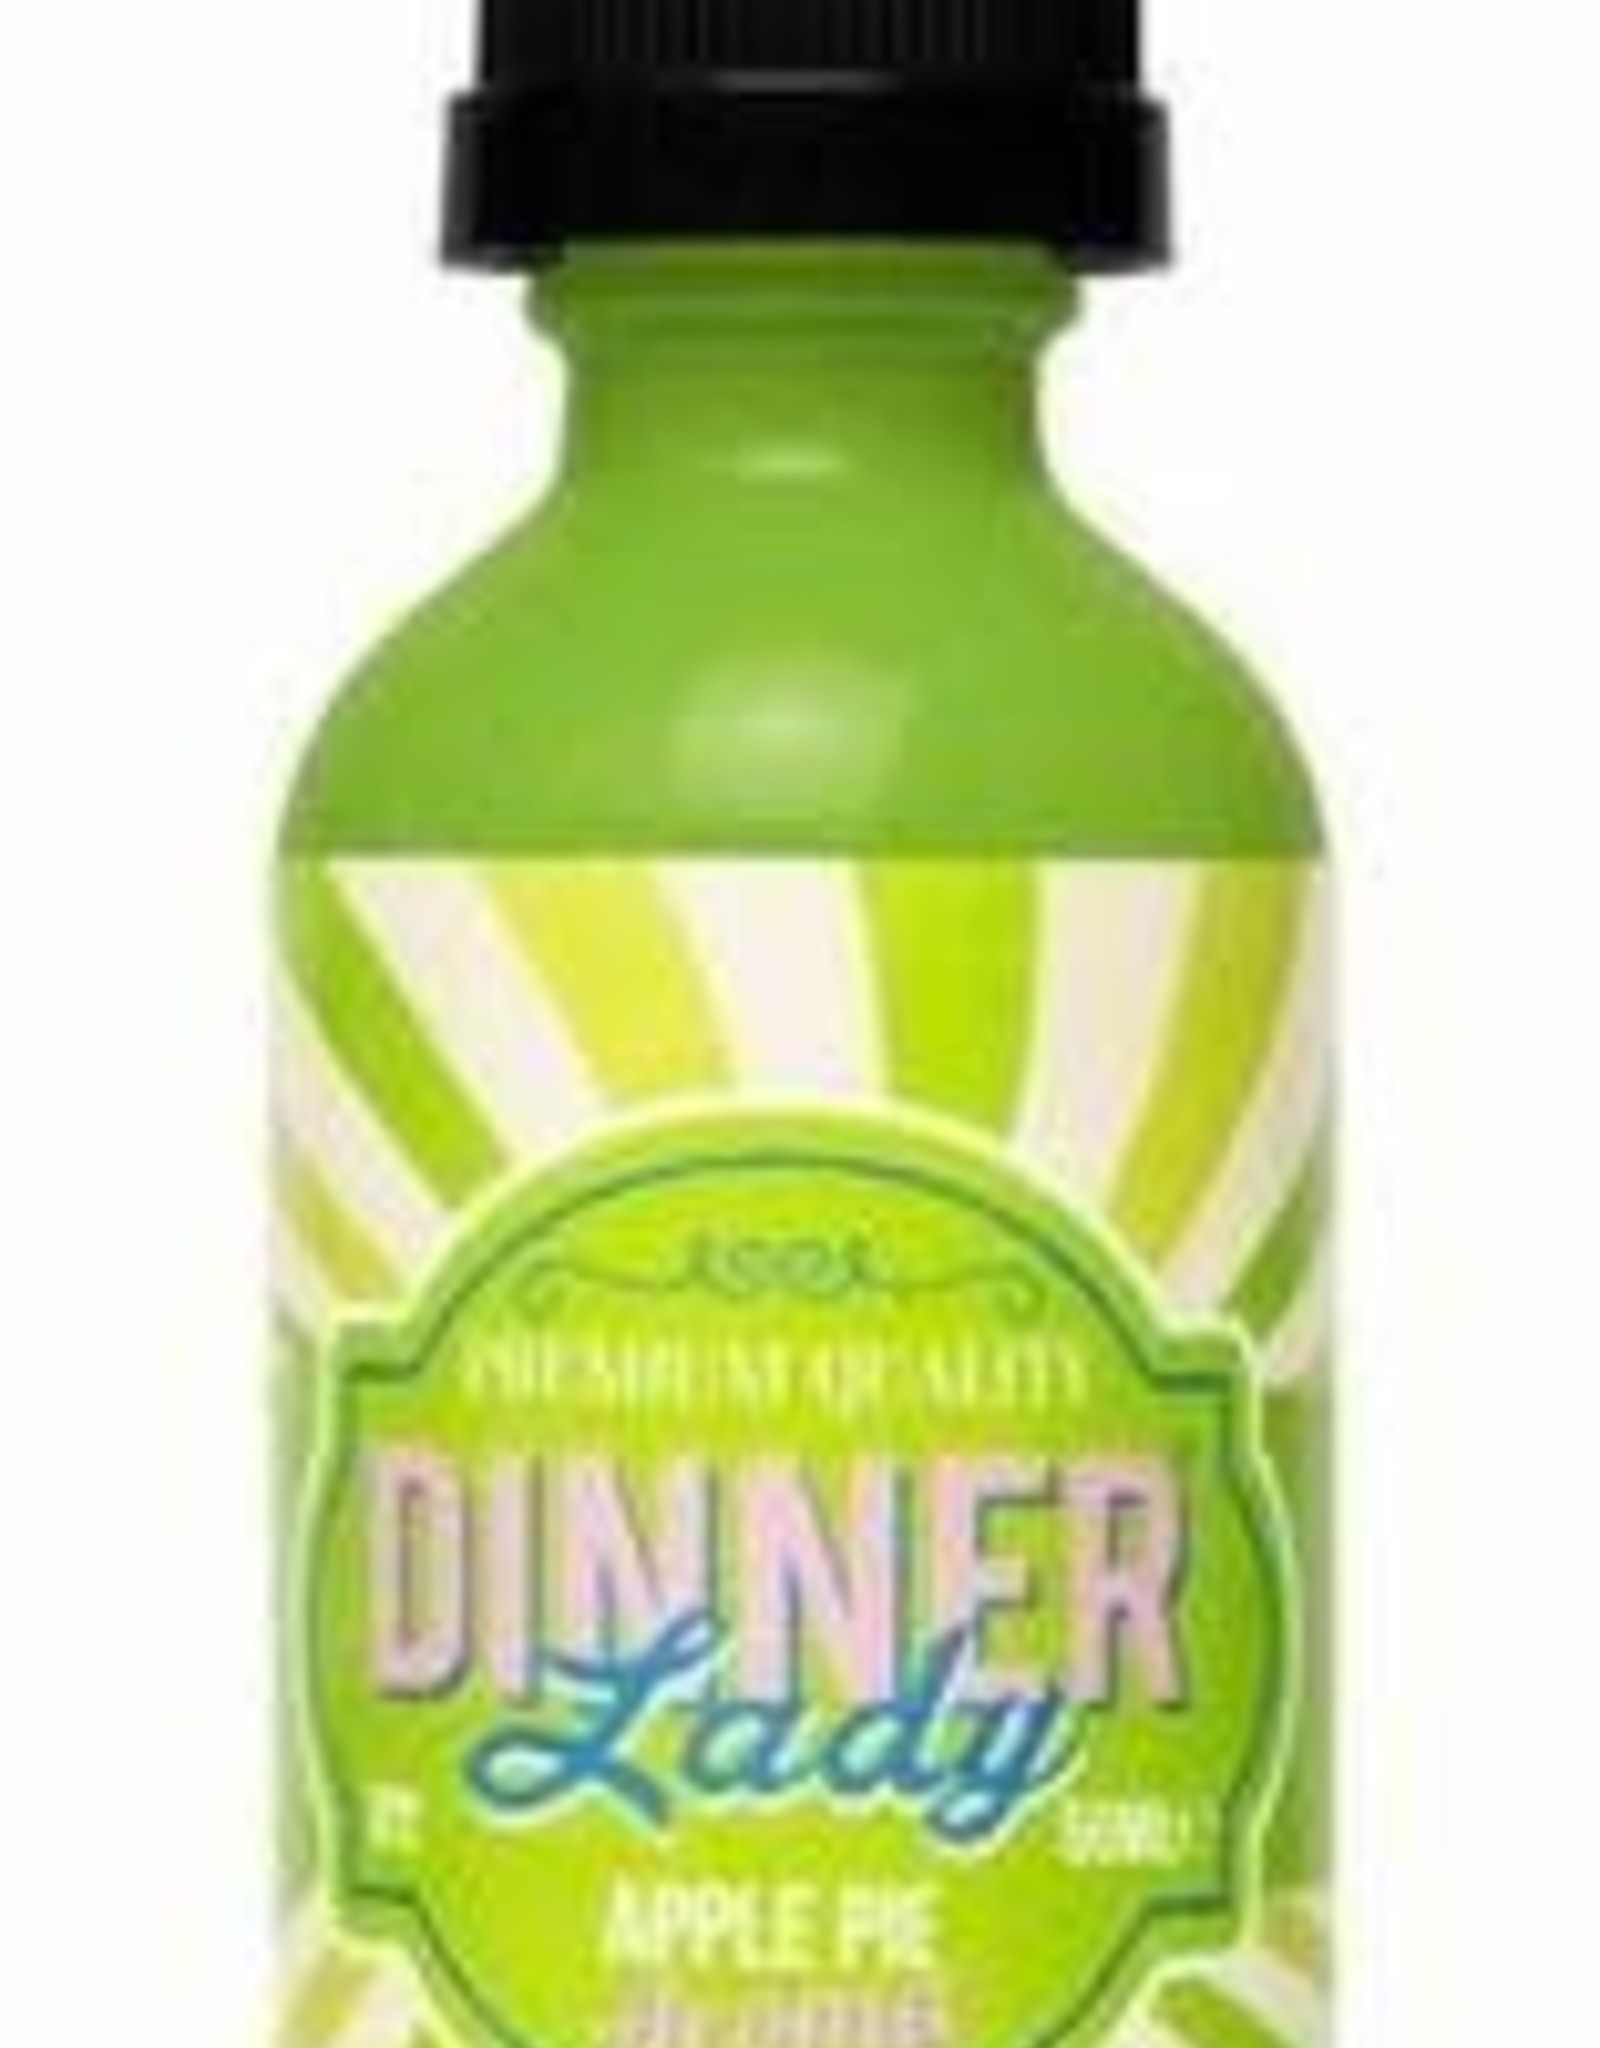 Dinner Lady Dinner Lady - Apple Pie (60mL)